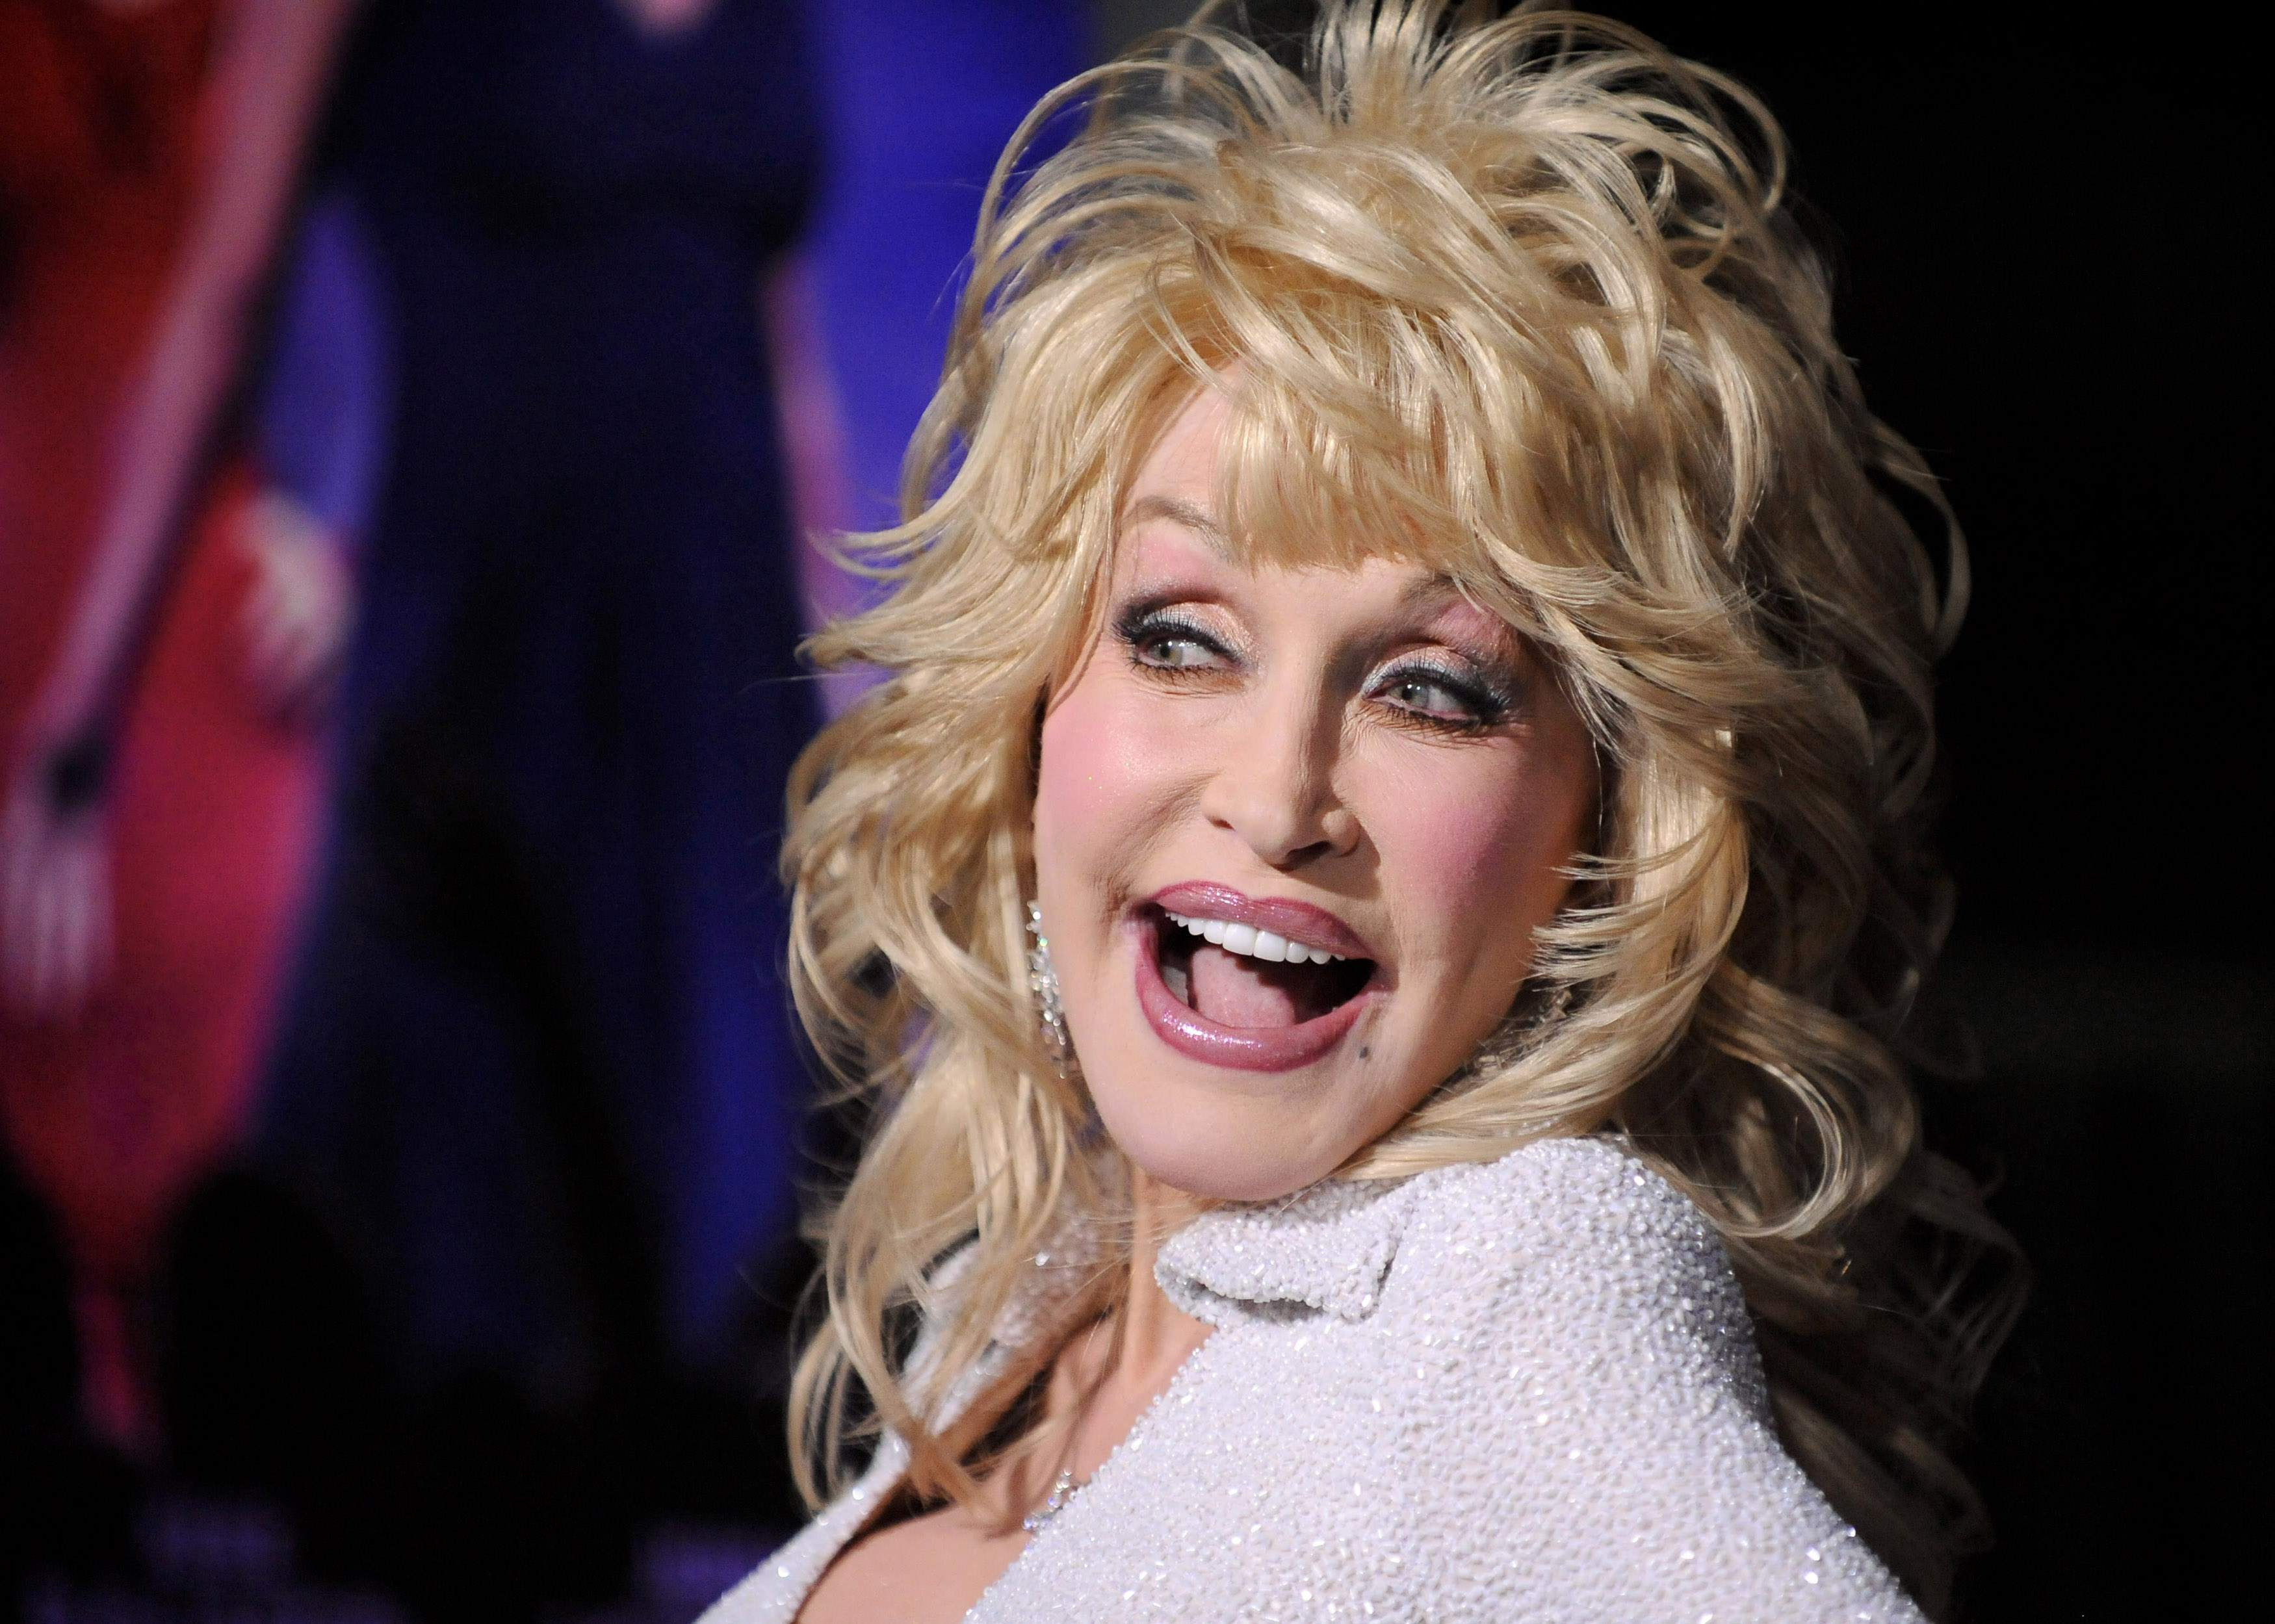 Dolly Parton And Husband Of 50 Years Renew Their Vows The Trent